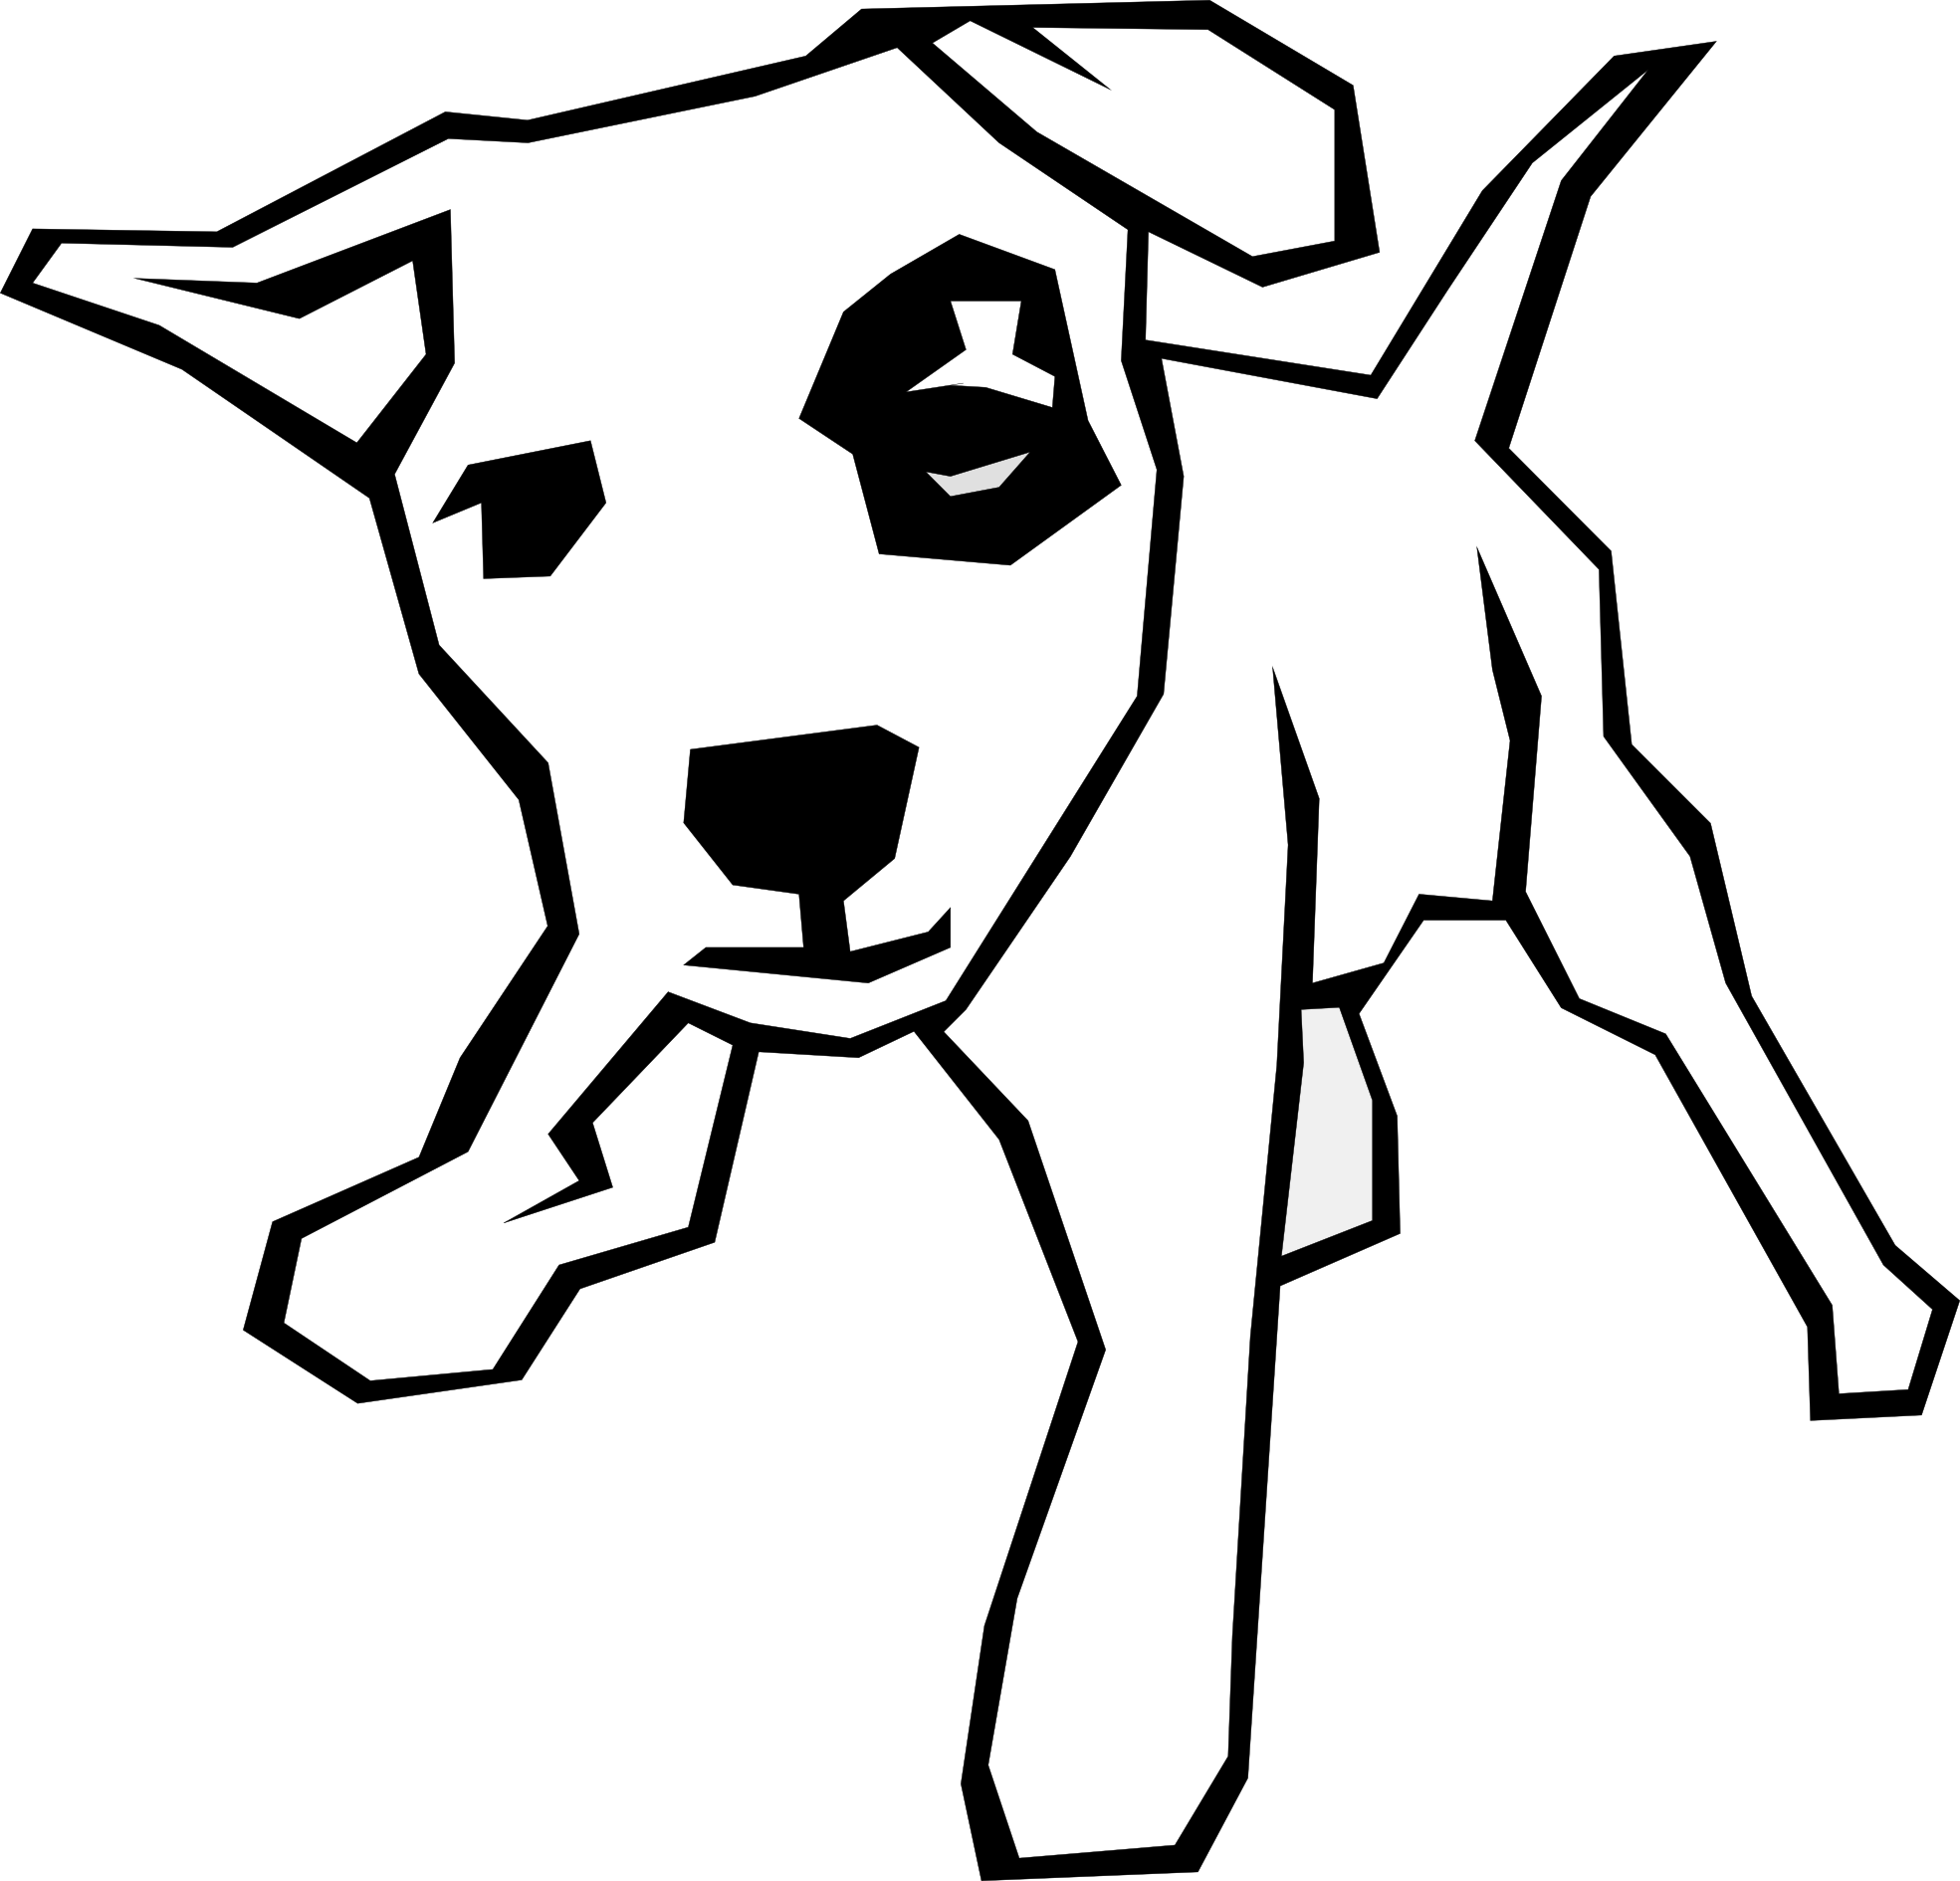 Bone clipart black and white png. Dog clip art panda